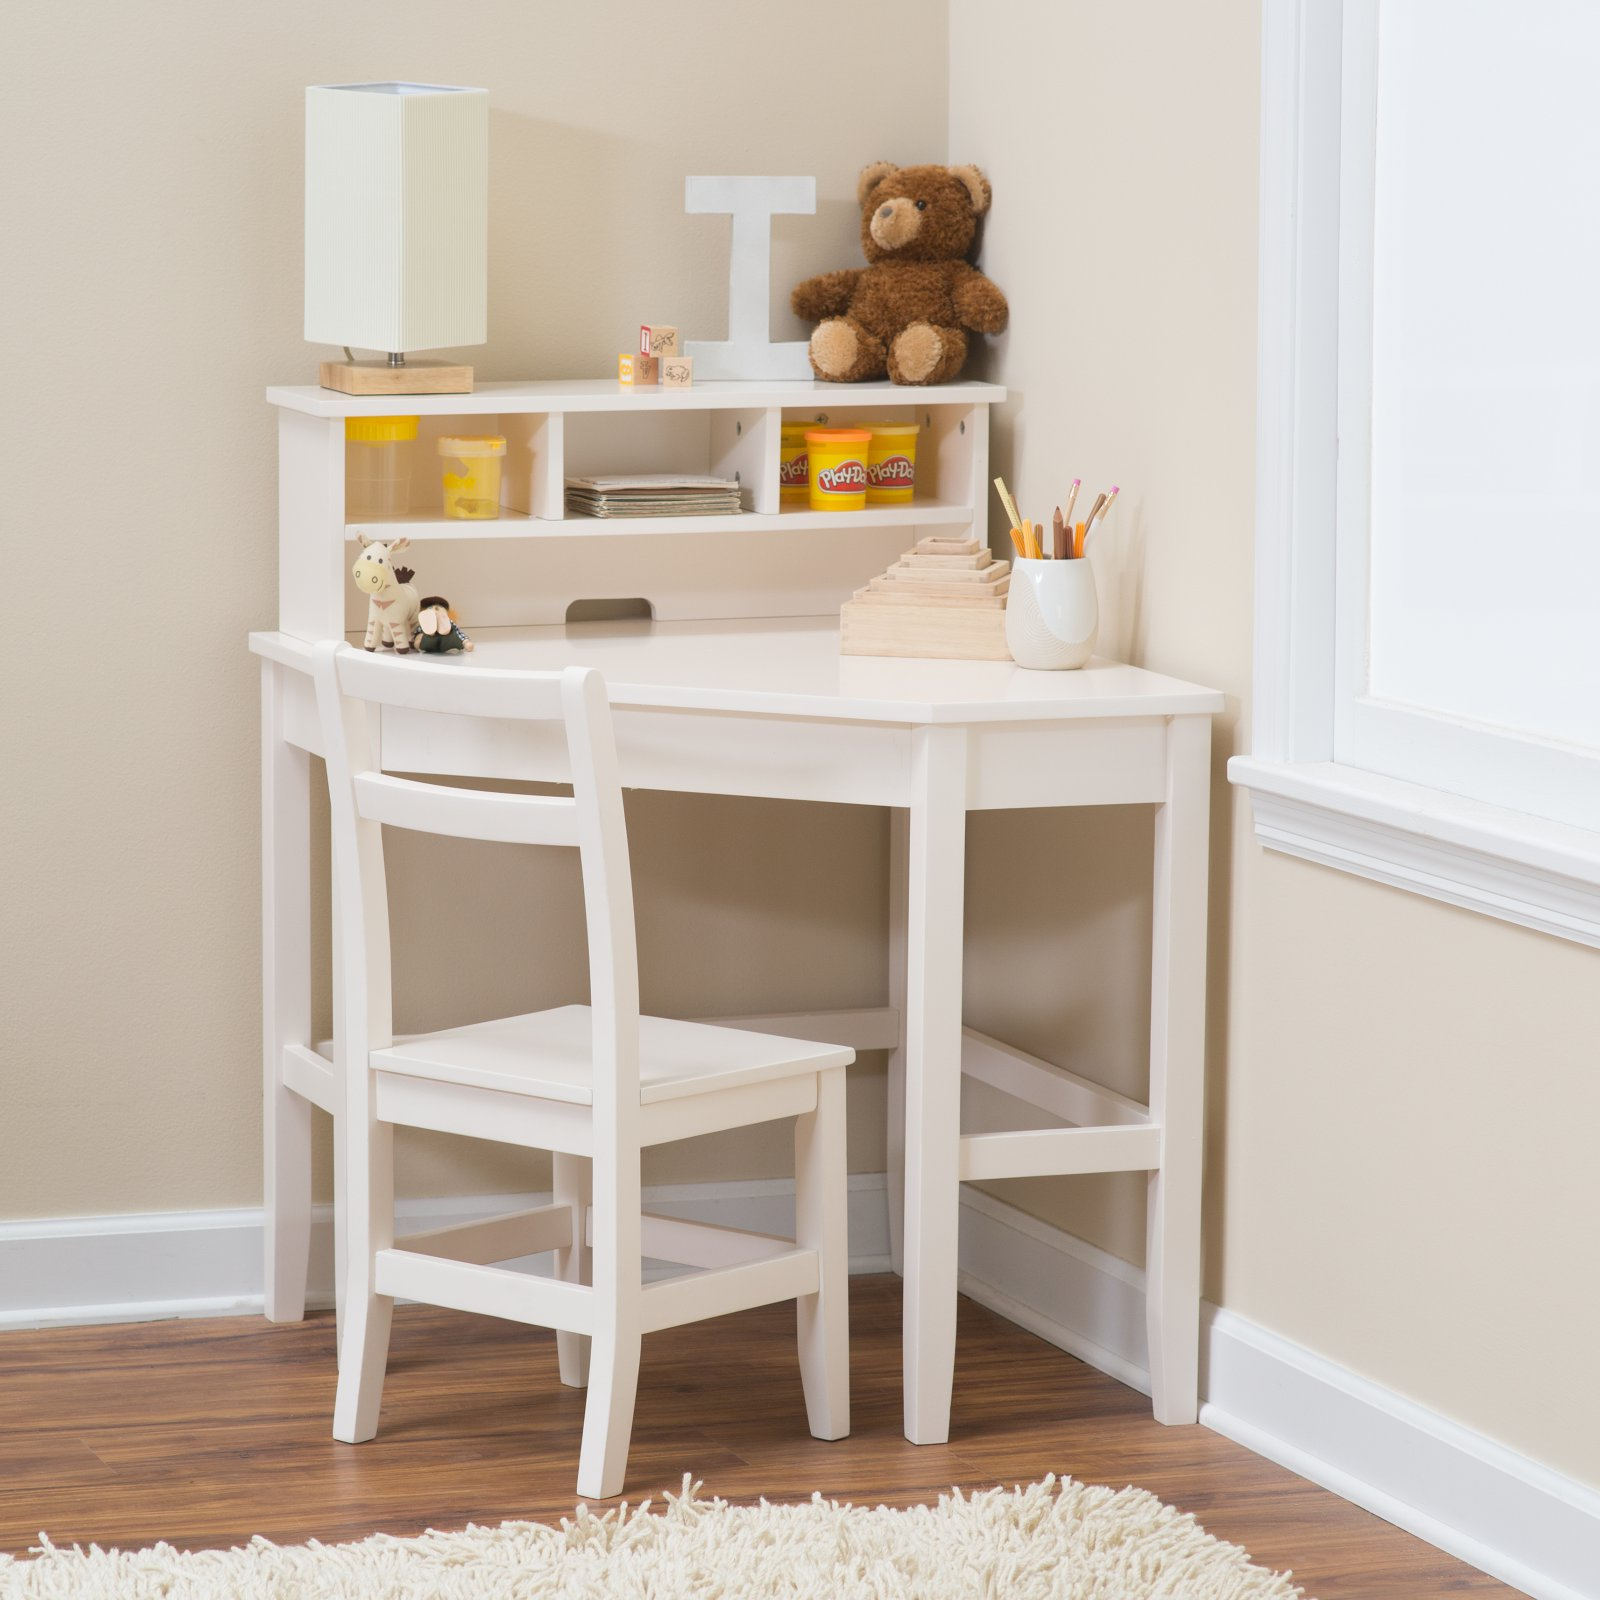 Outstanding Classic Playtime Juvenile Corner Desk And Reversible Hutch With Chair Vanilla Download Free Architecture Designs Scobabritishbridgeorg